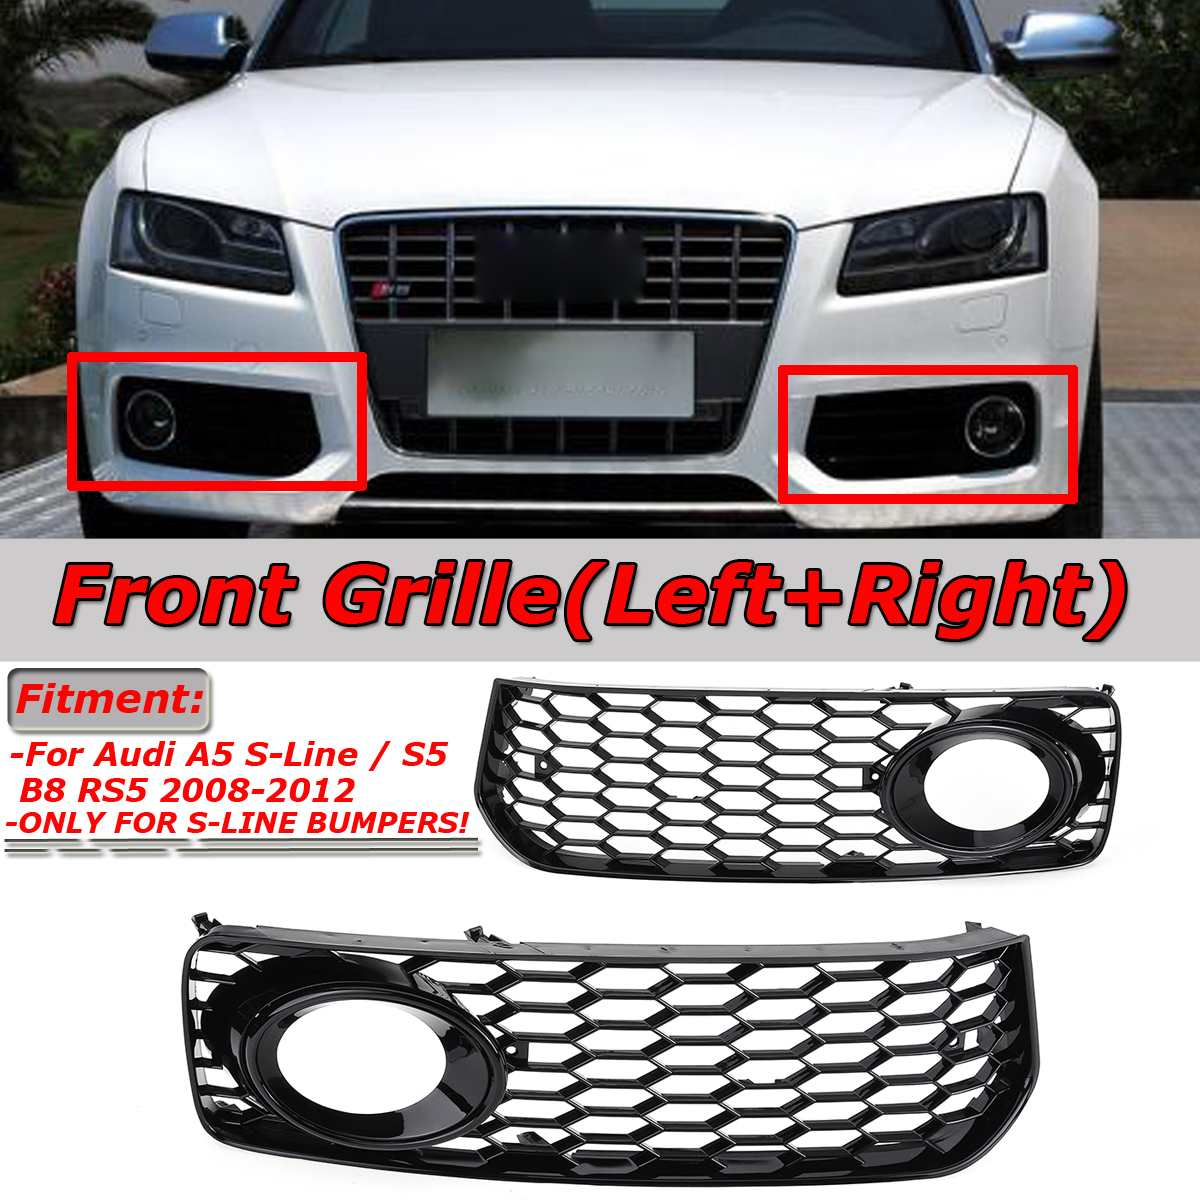 2pcs Car Fog Light Lamp Cover Honeycomb Mesh Hex Front Grille Grill For Audi A5 S-Line/S5 B8 RS5 2008-2012 Black / Chrome Silver2pcs Car Fog Light Lamp Cover Honeycomb Mesh Hex Front Grille Grill For Audi A5 S-Line/S5 B8 RS5 2008-2012 Black / Chrome Silver